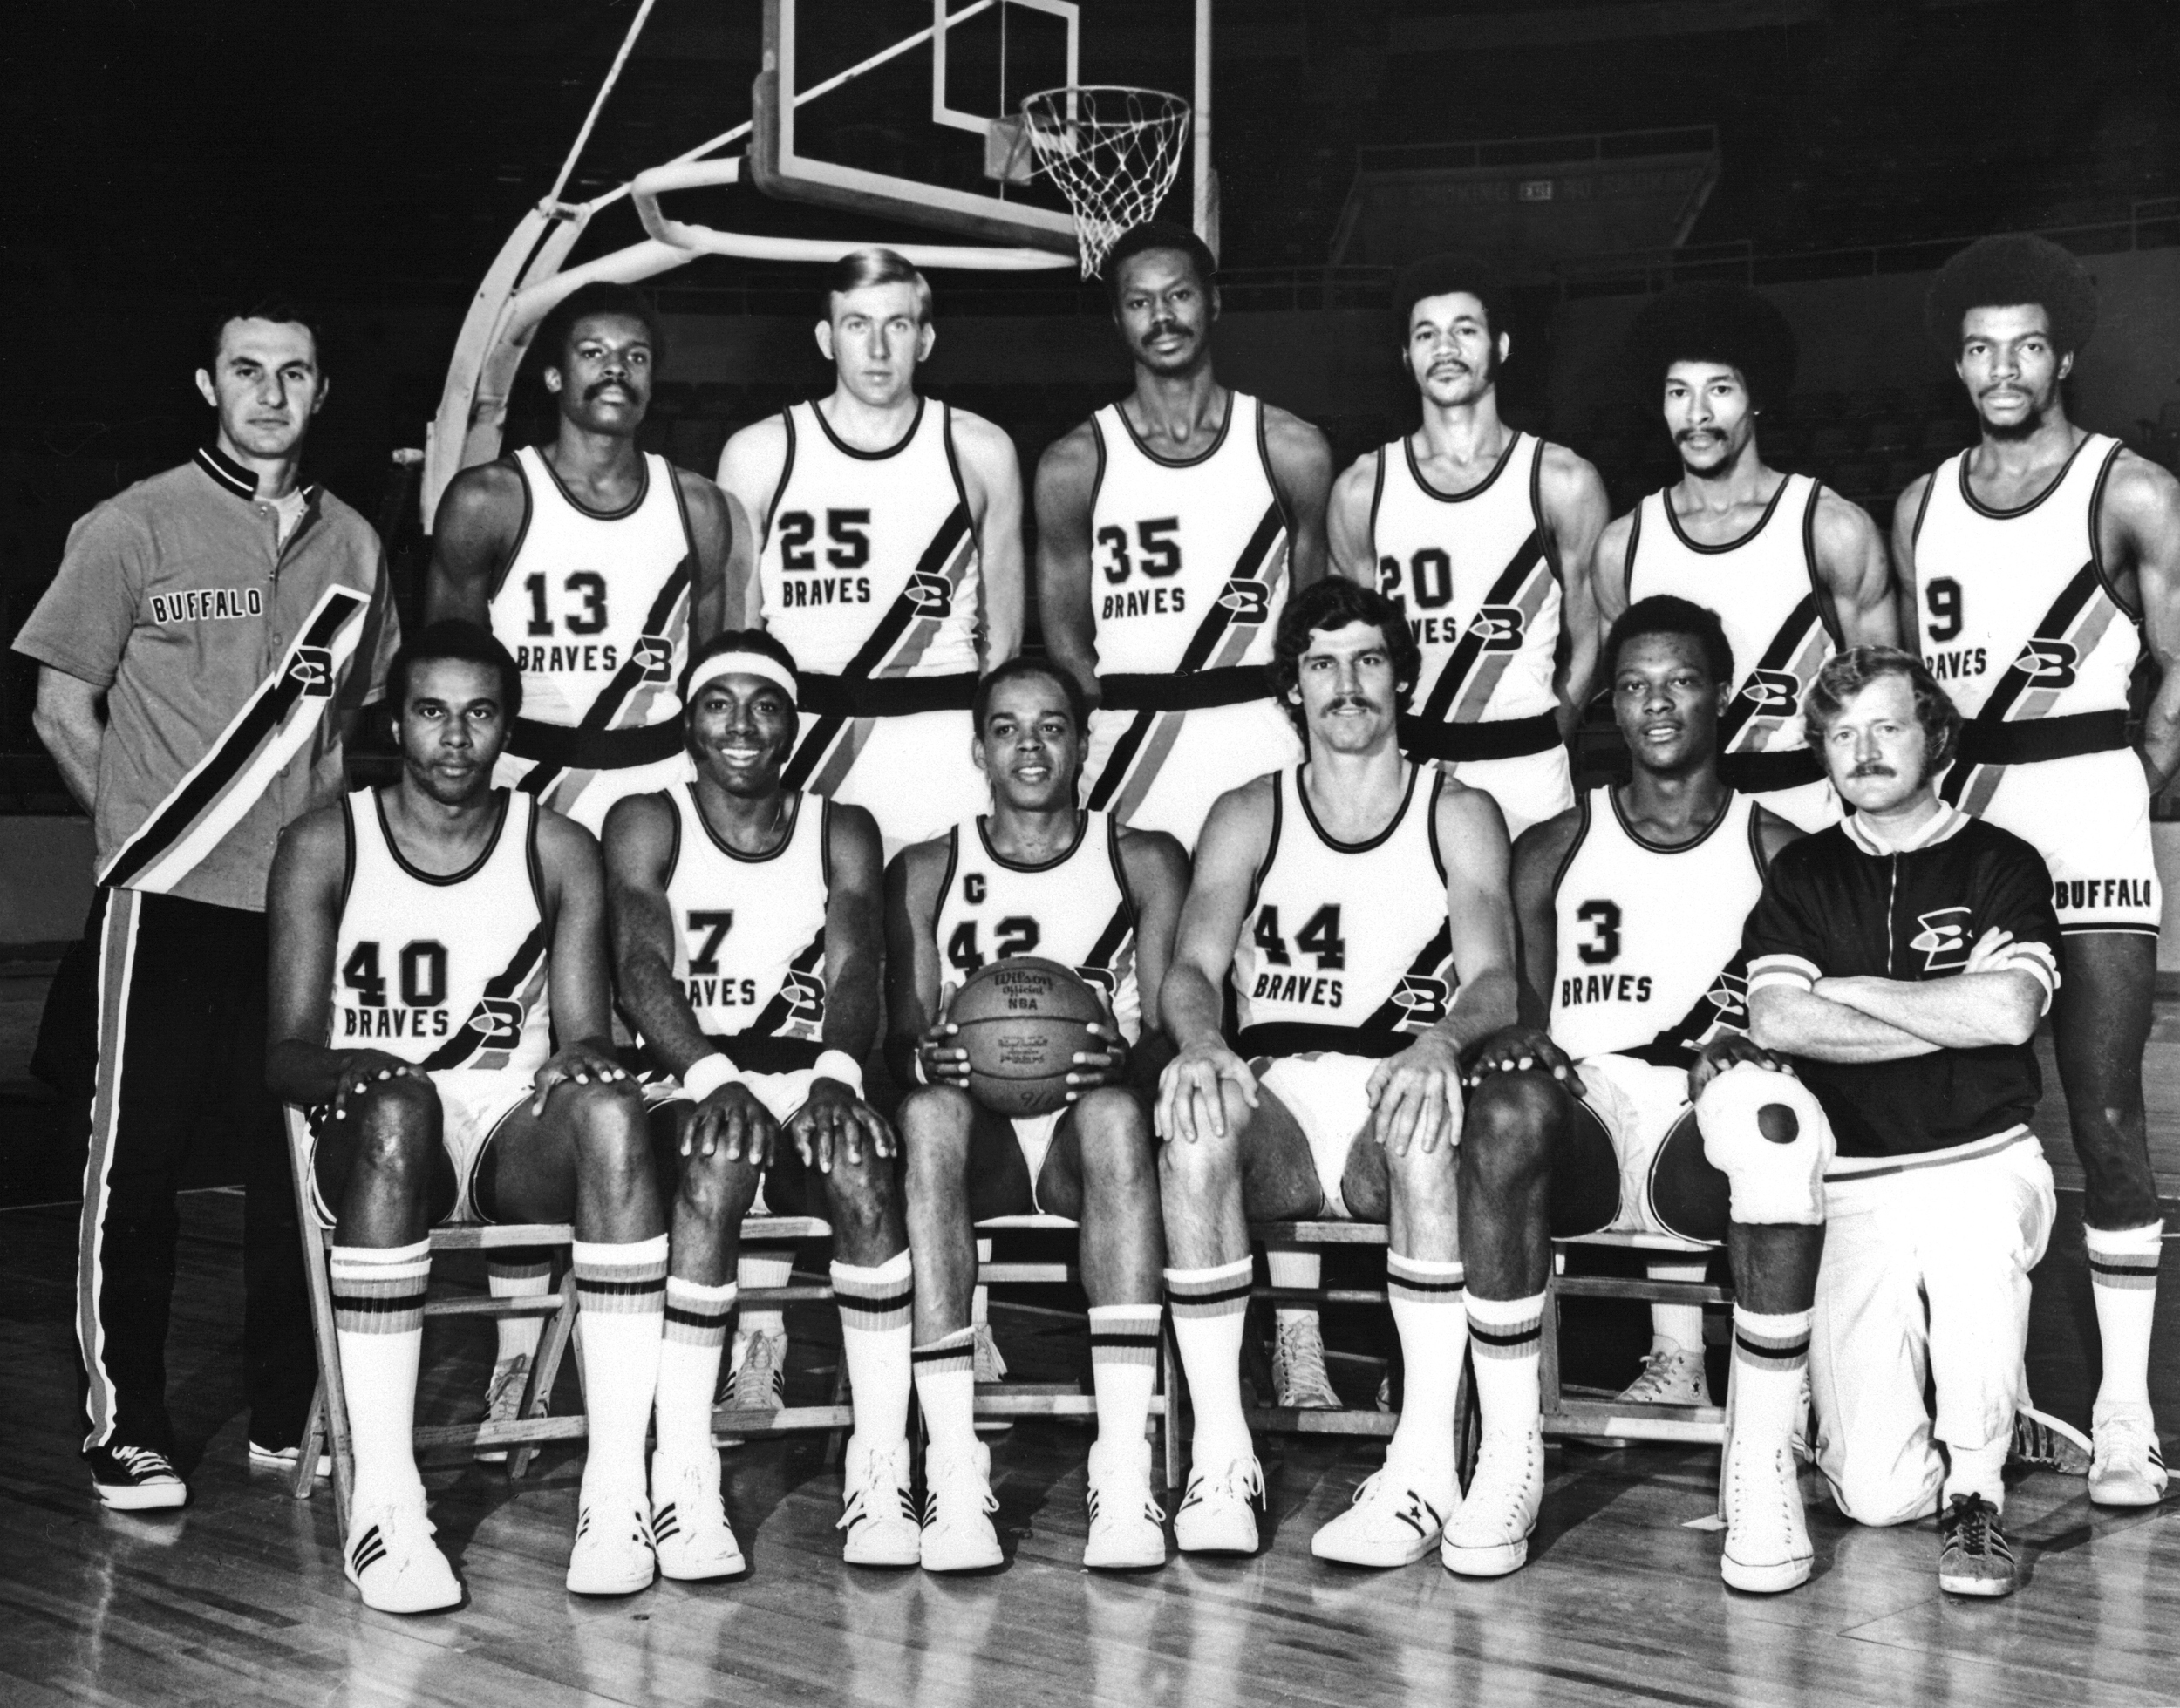 Mahdi Abdul-Rahman wears #42 during a team photo with the Buffalo Braves.